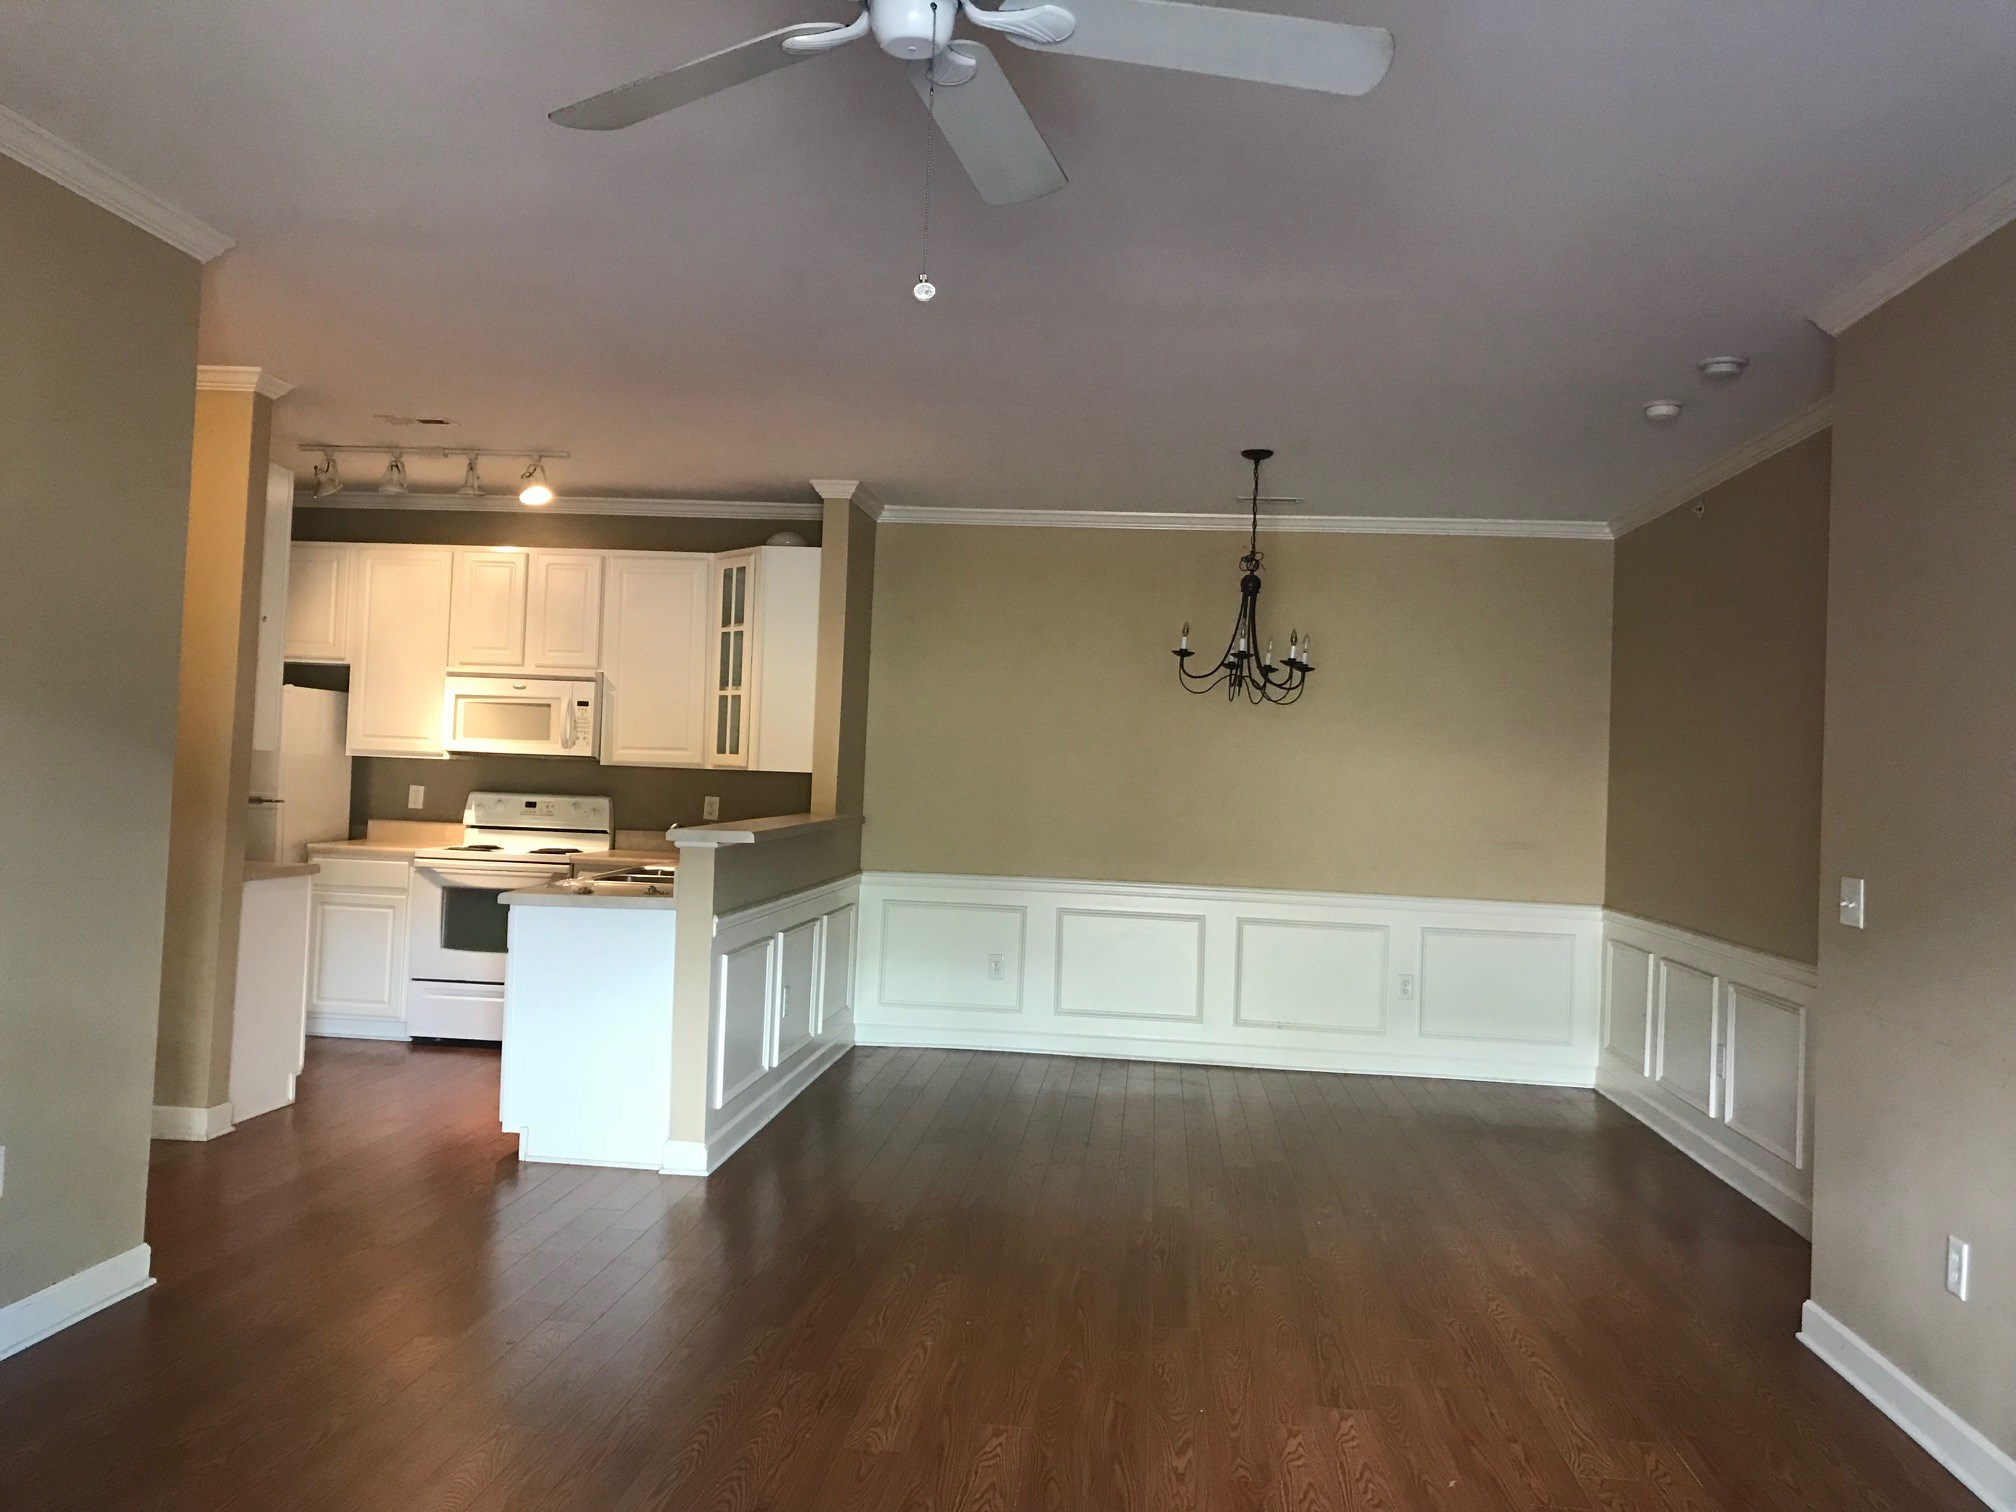 2 Bed/2 Bath With Loft Apartment For Rent In University Area